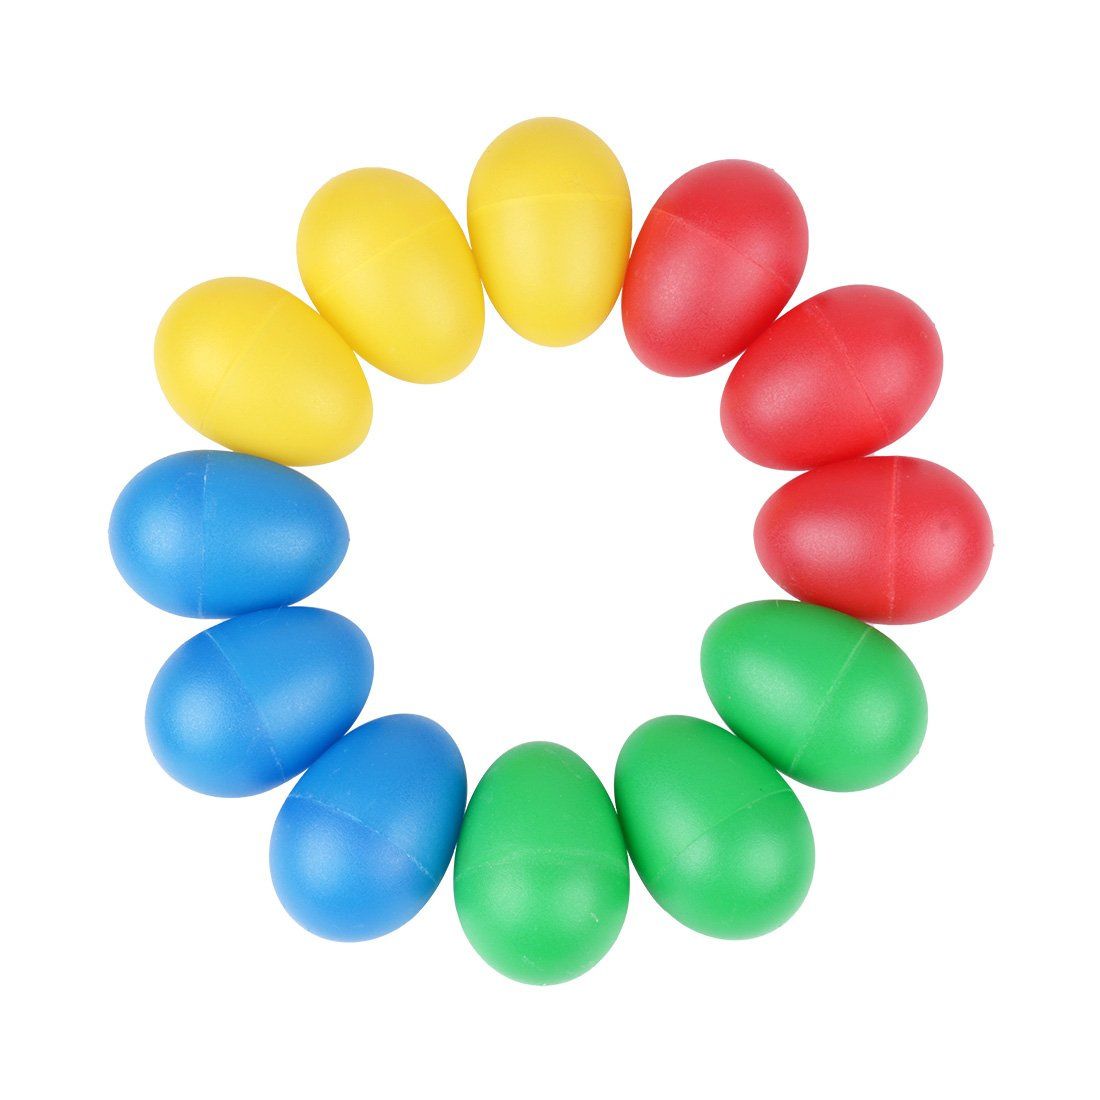 Ilyever 12 Pack Colorful Egg Shaker Set Percussion Musical Maracas Eggs for Kids Child Party Favors ILY-010